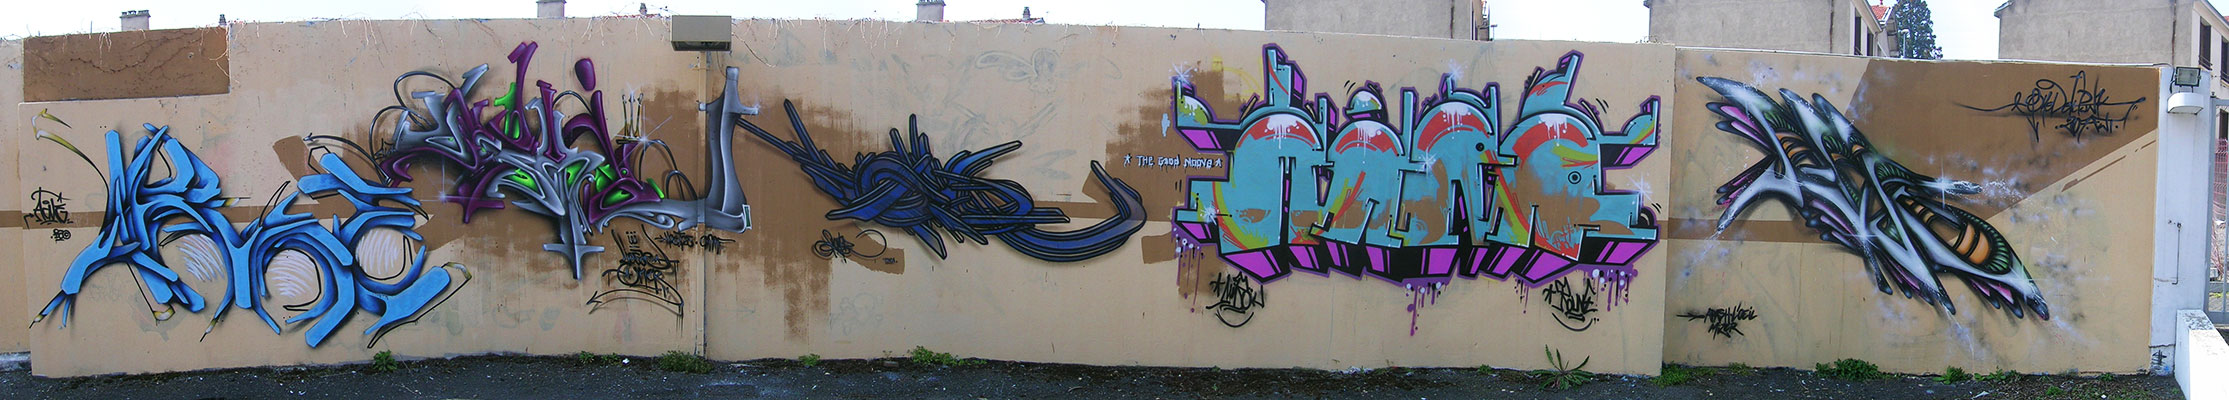 tkn_h2o_graffiti